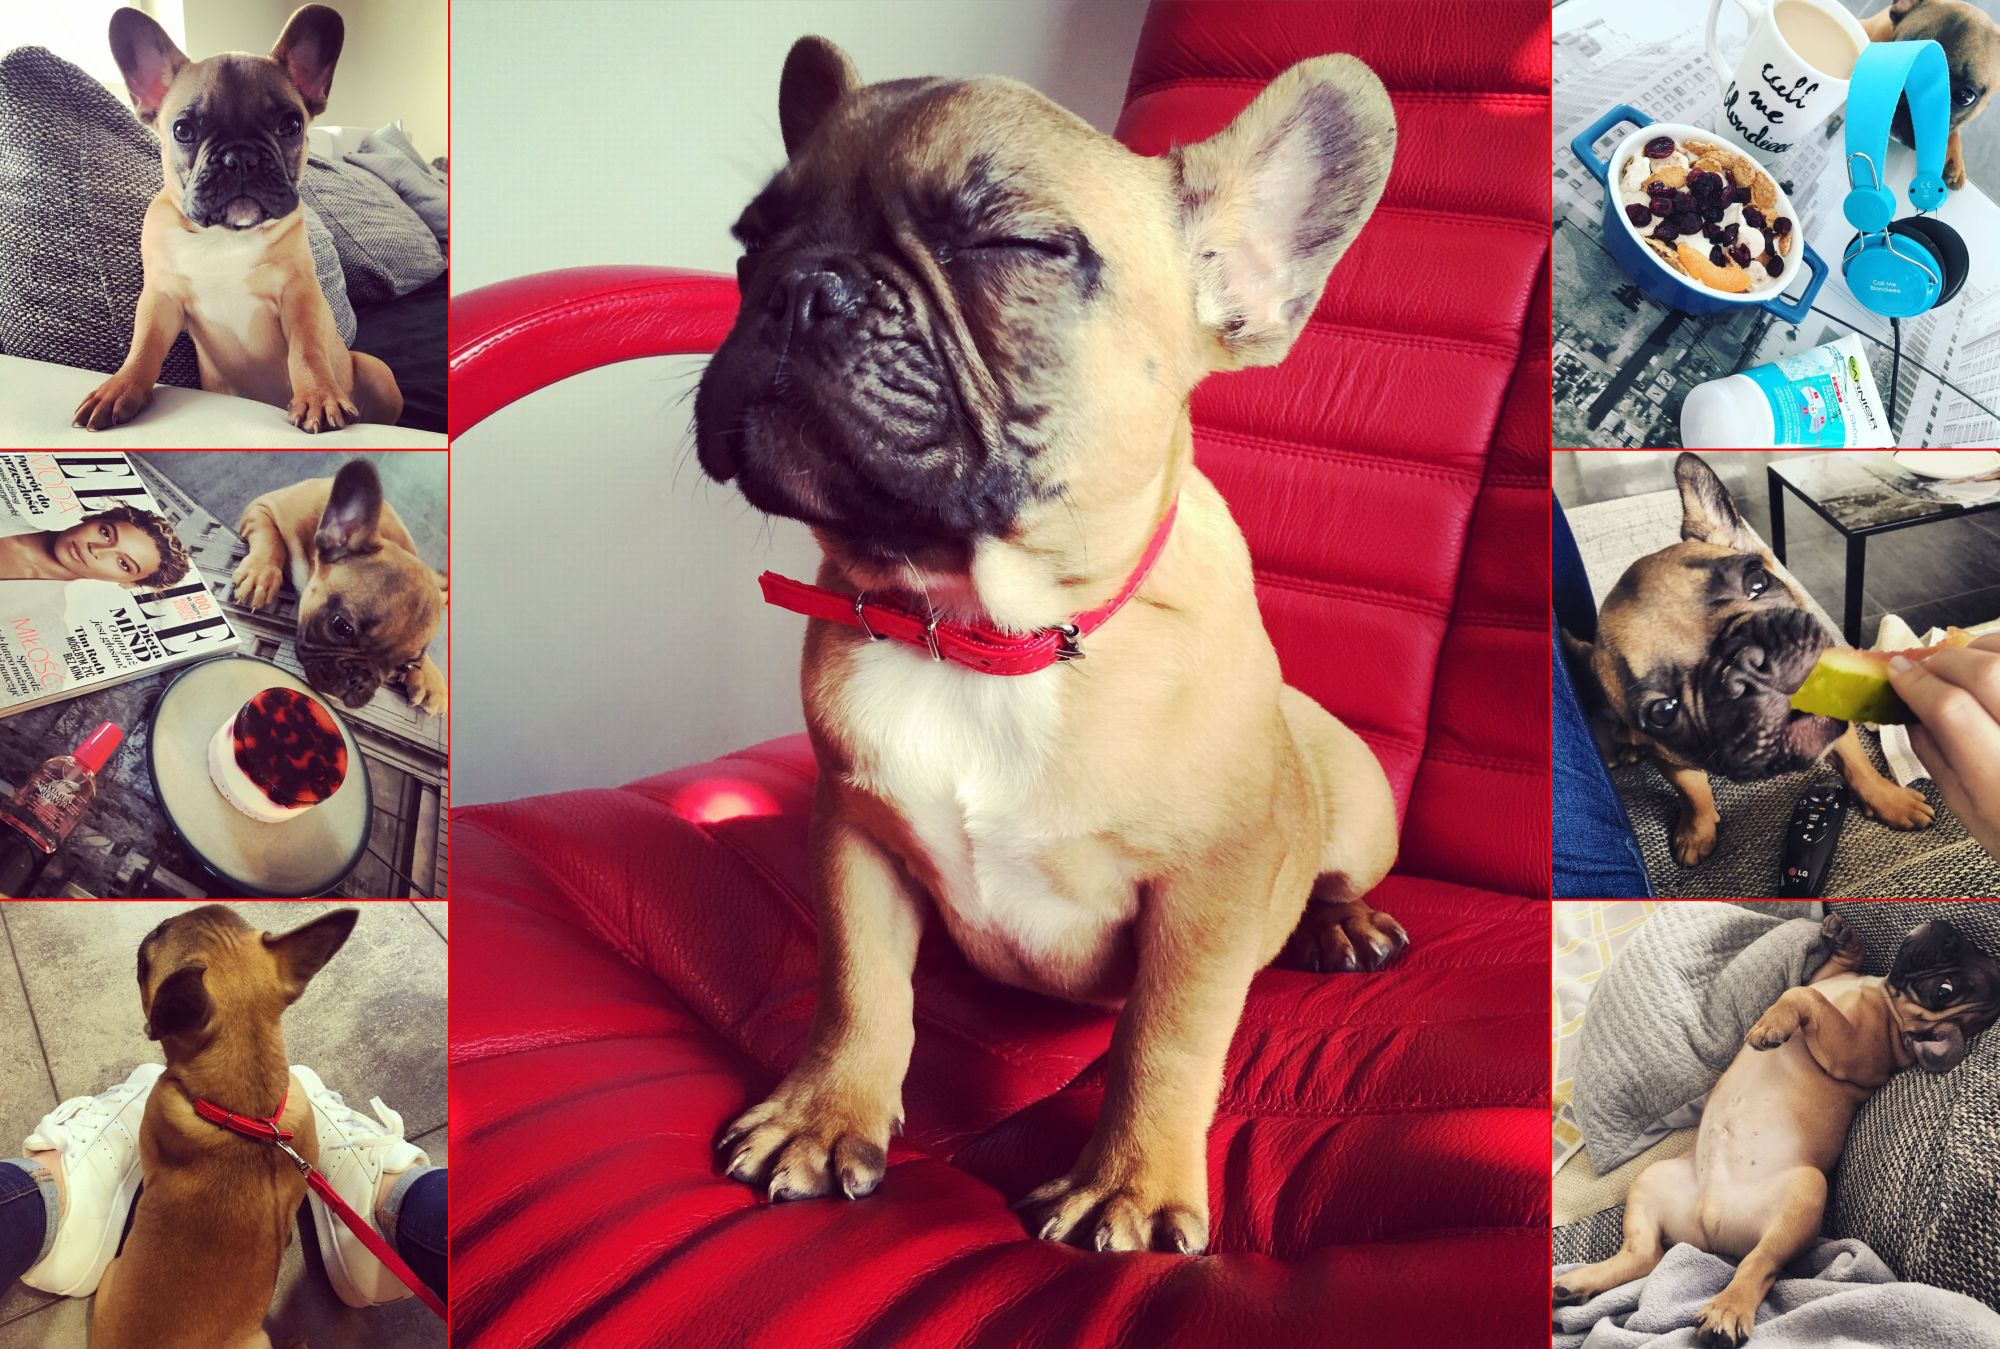 janusz_the_frenchie